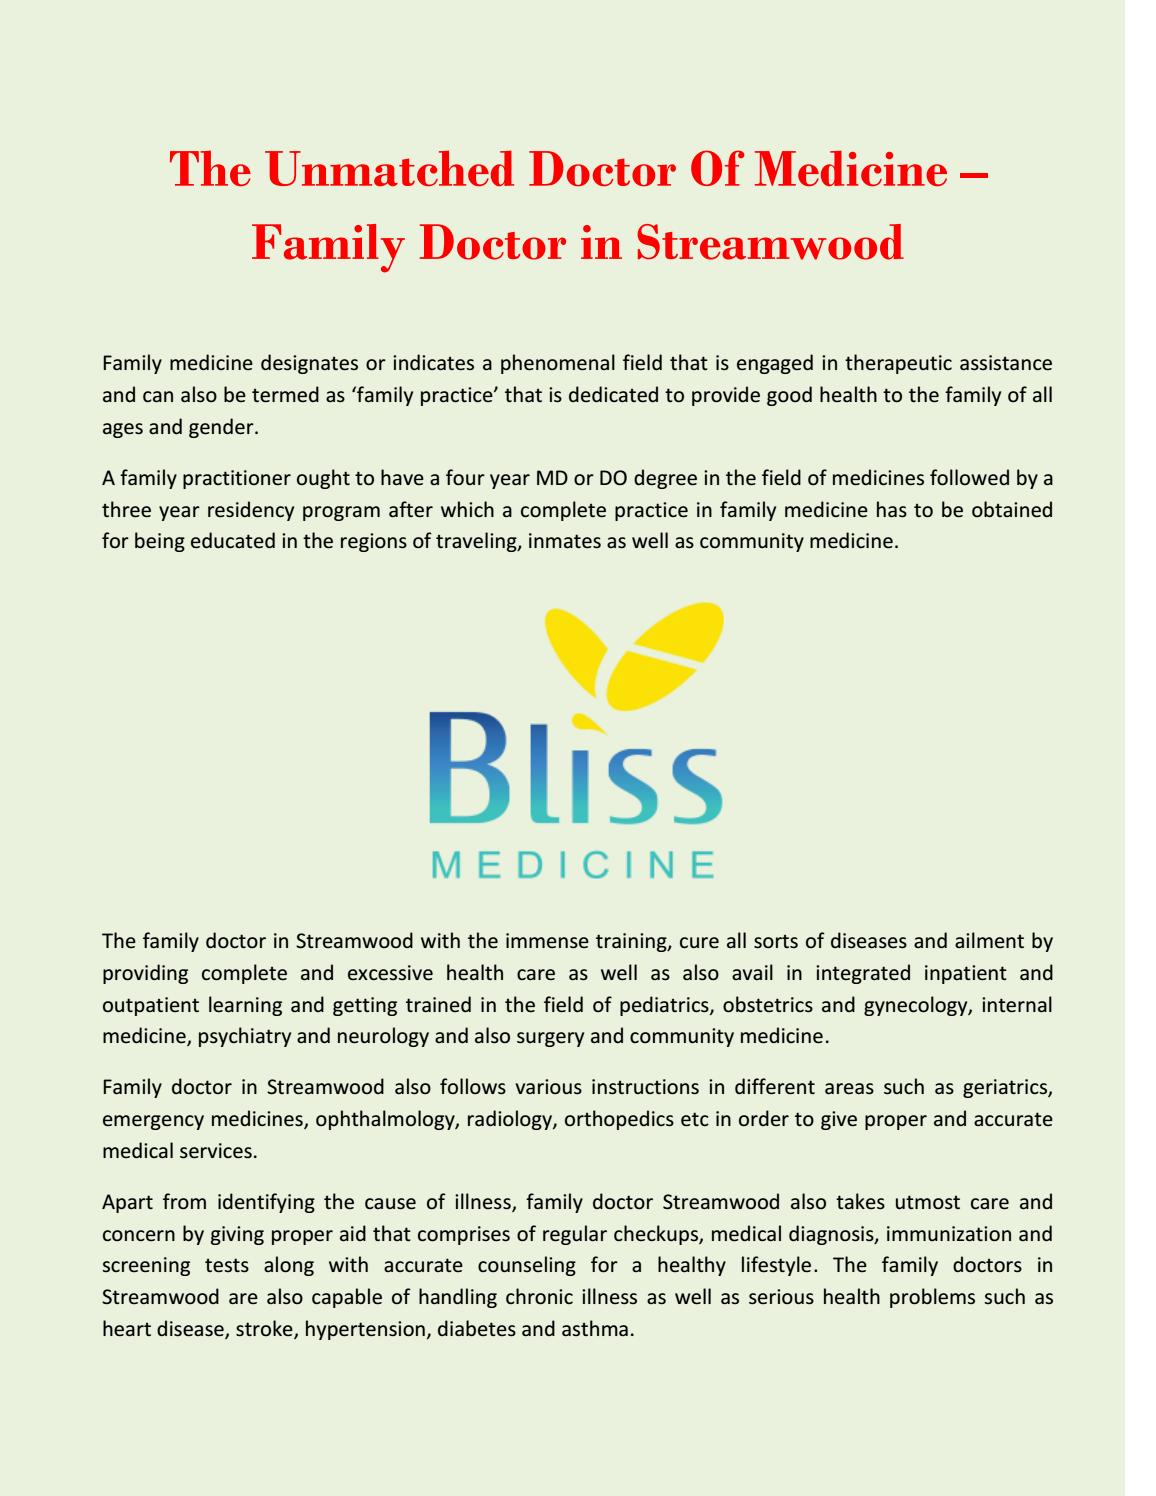 The Unmatched Doctor Of Medicine – Family Doctor in Streamwood by